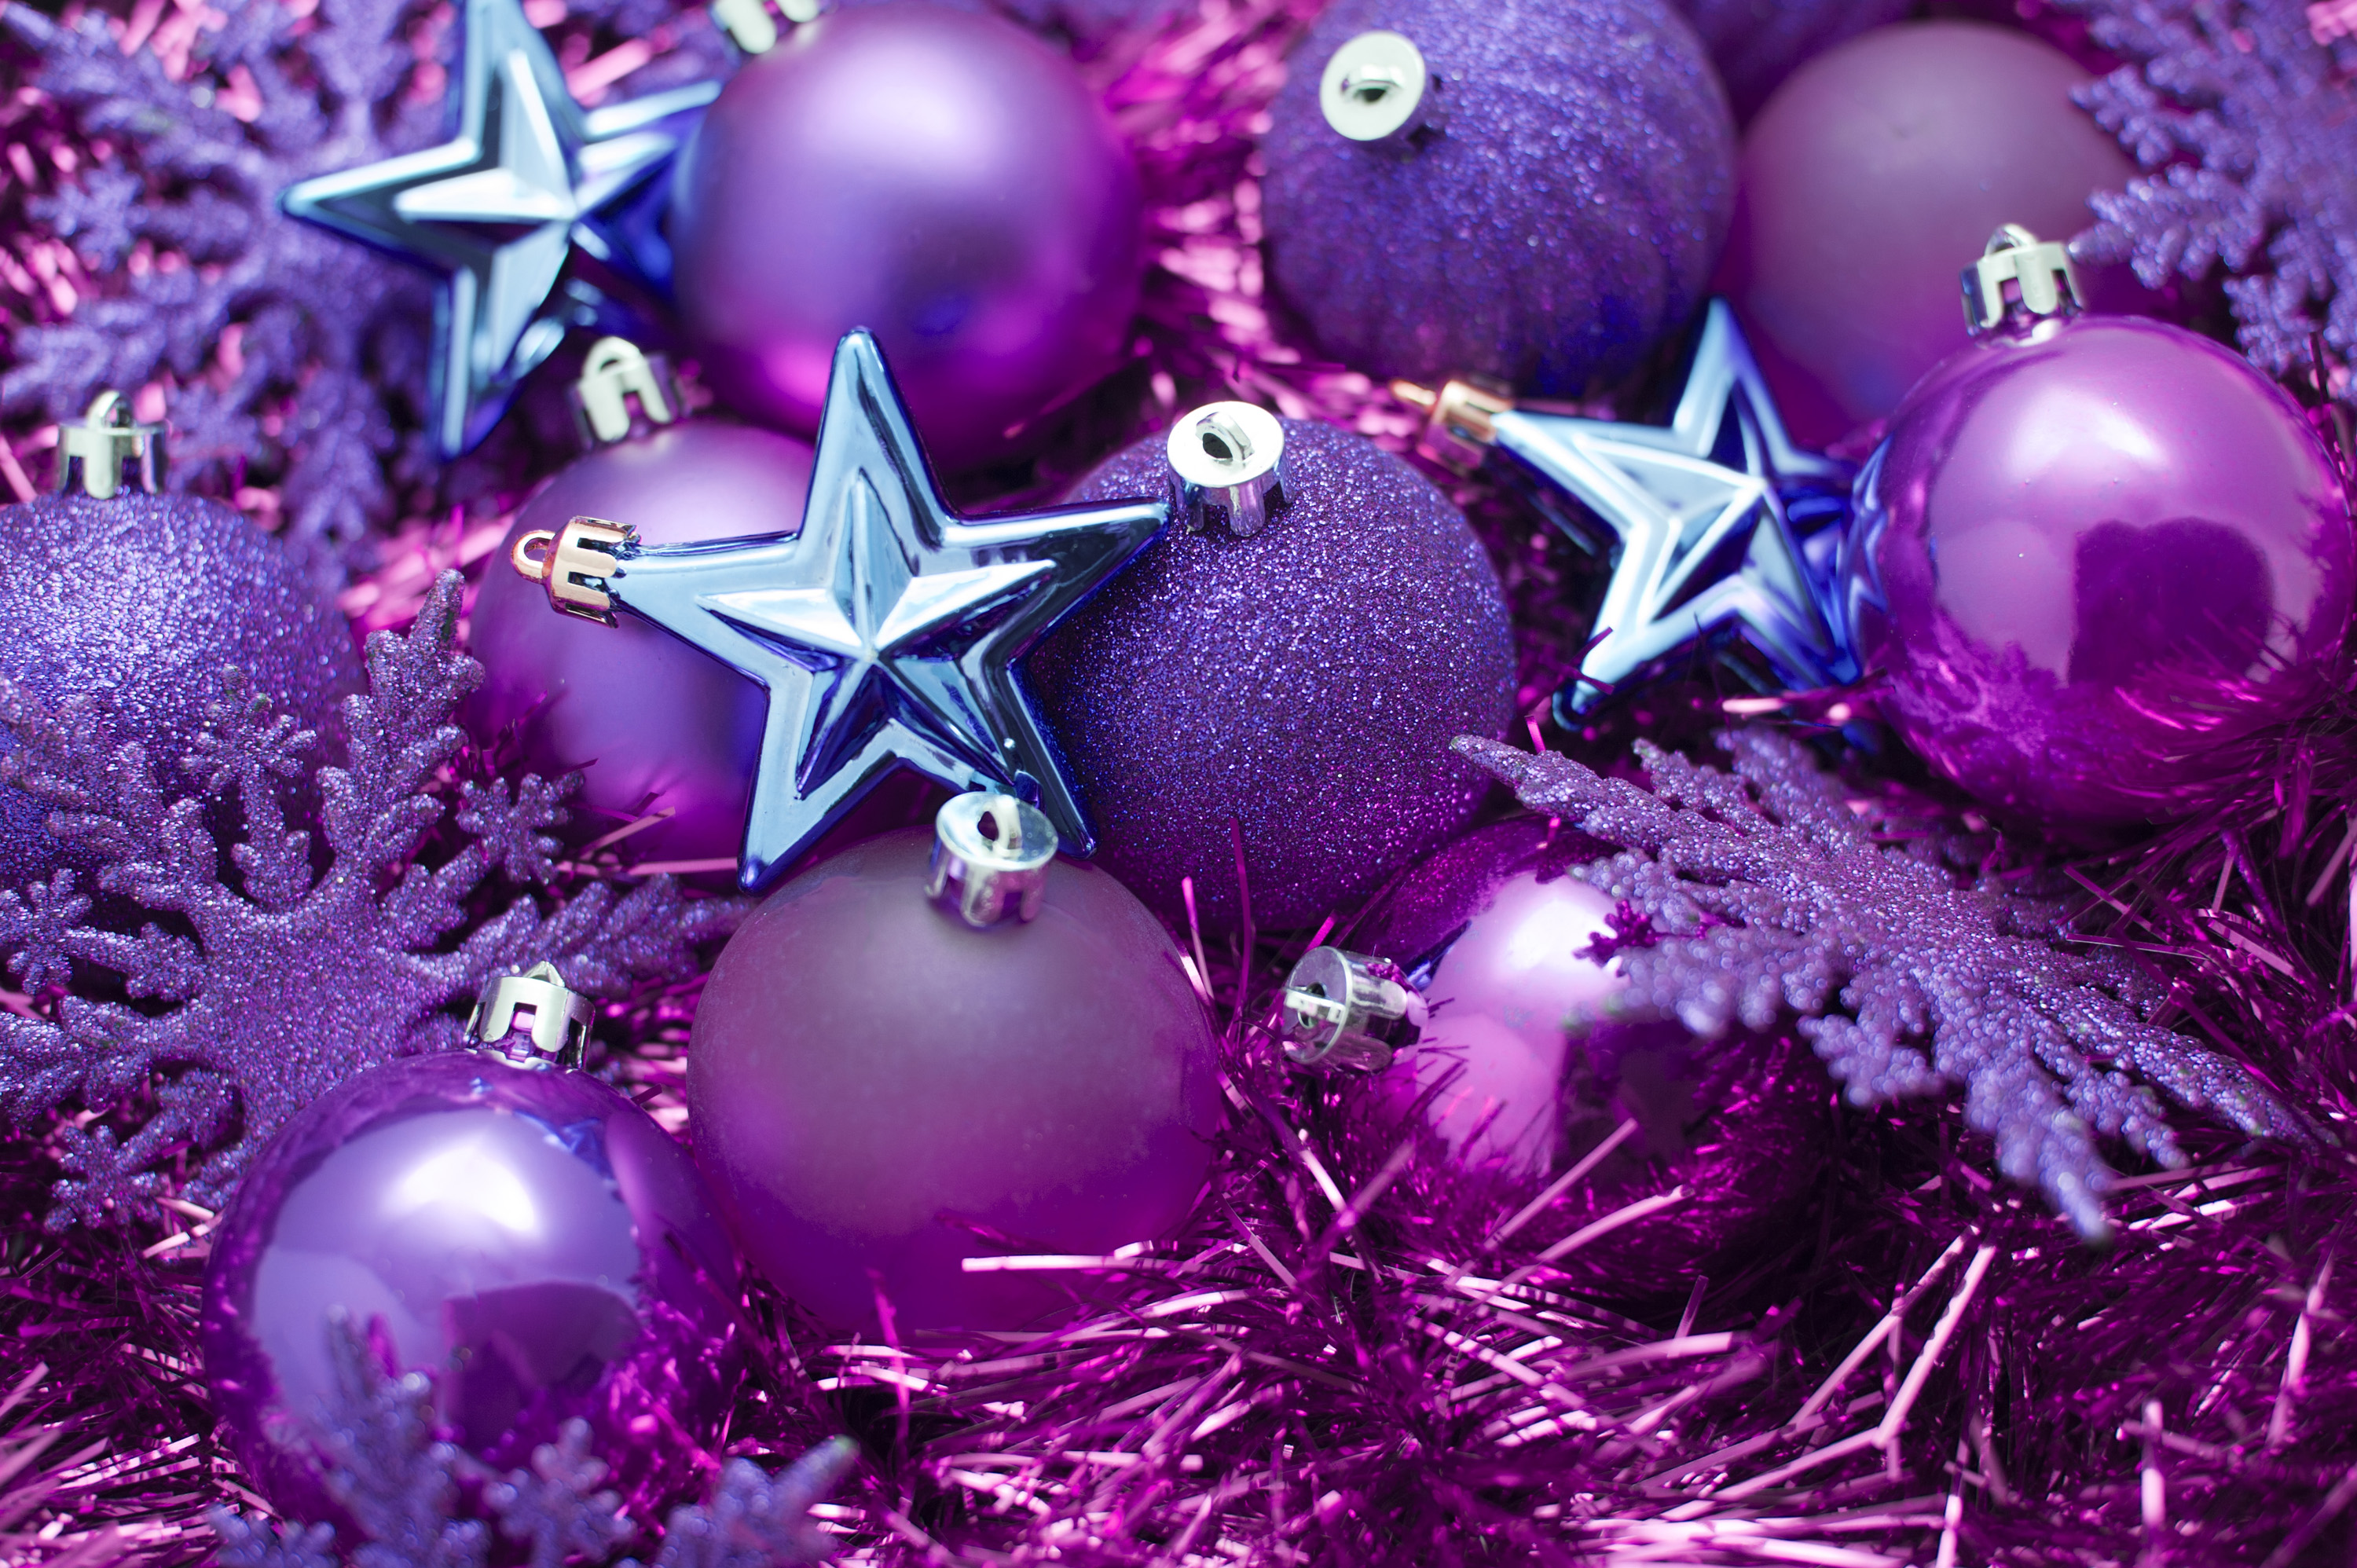 An assortment of different purple and pink Christmas decorations including baubles, snowflakes, stars and tinsel